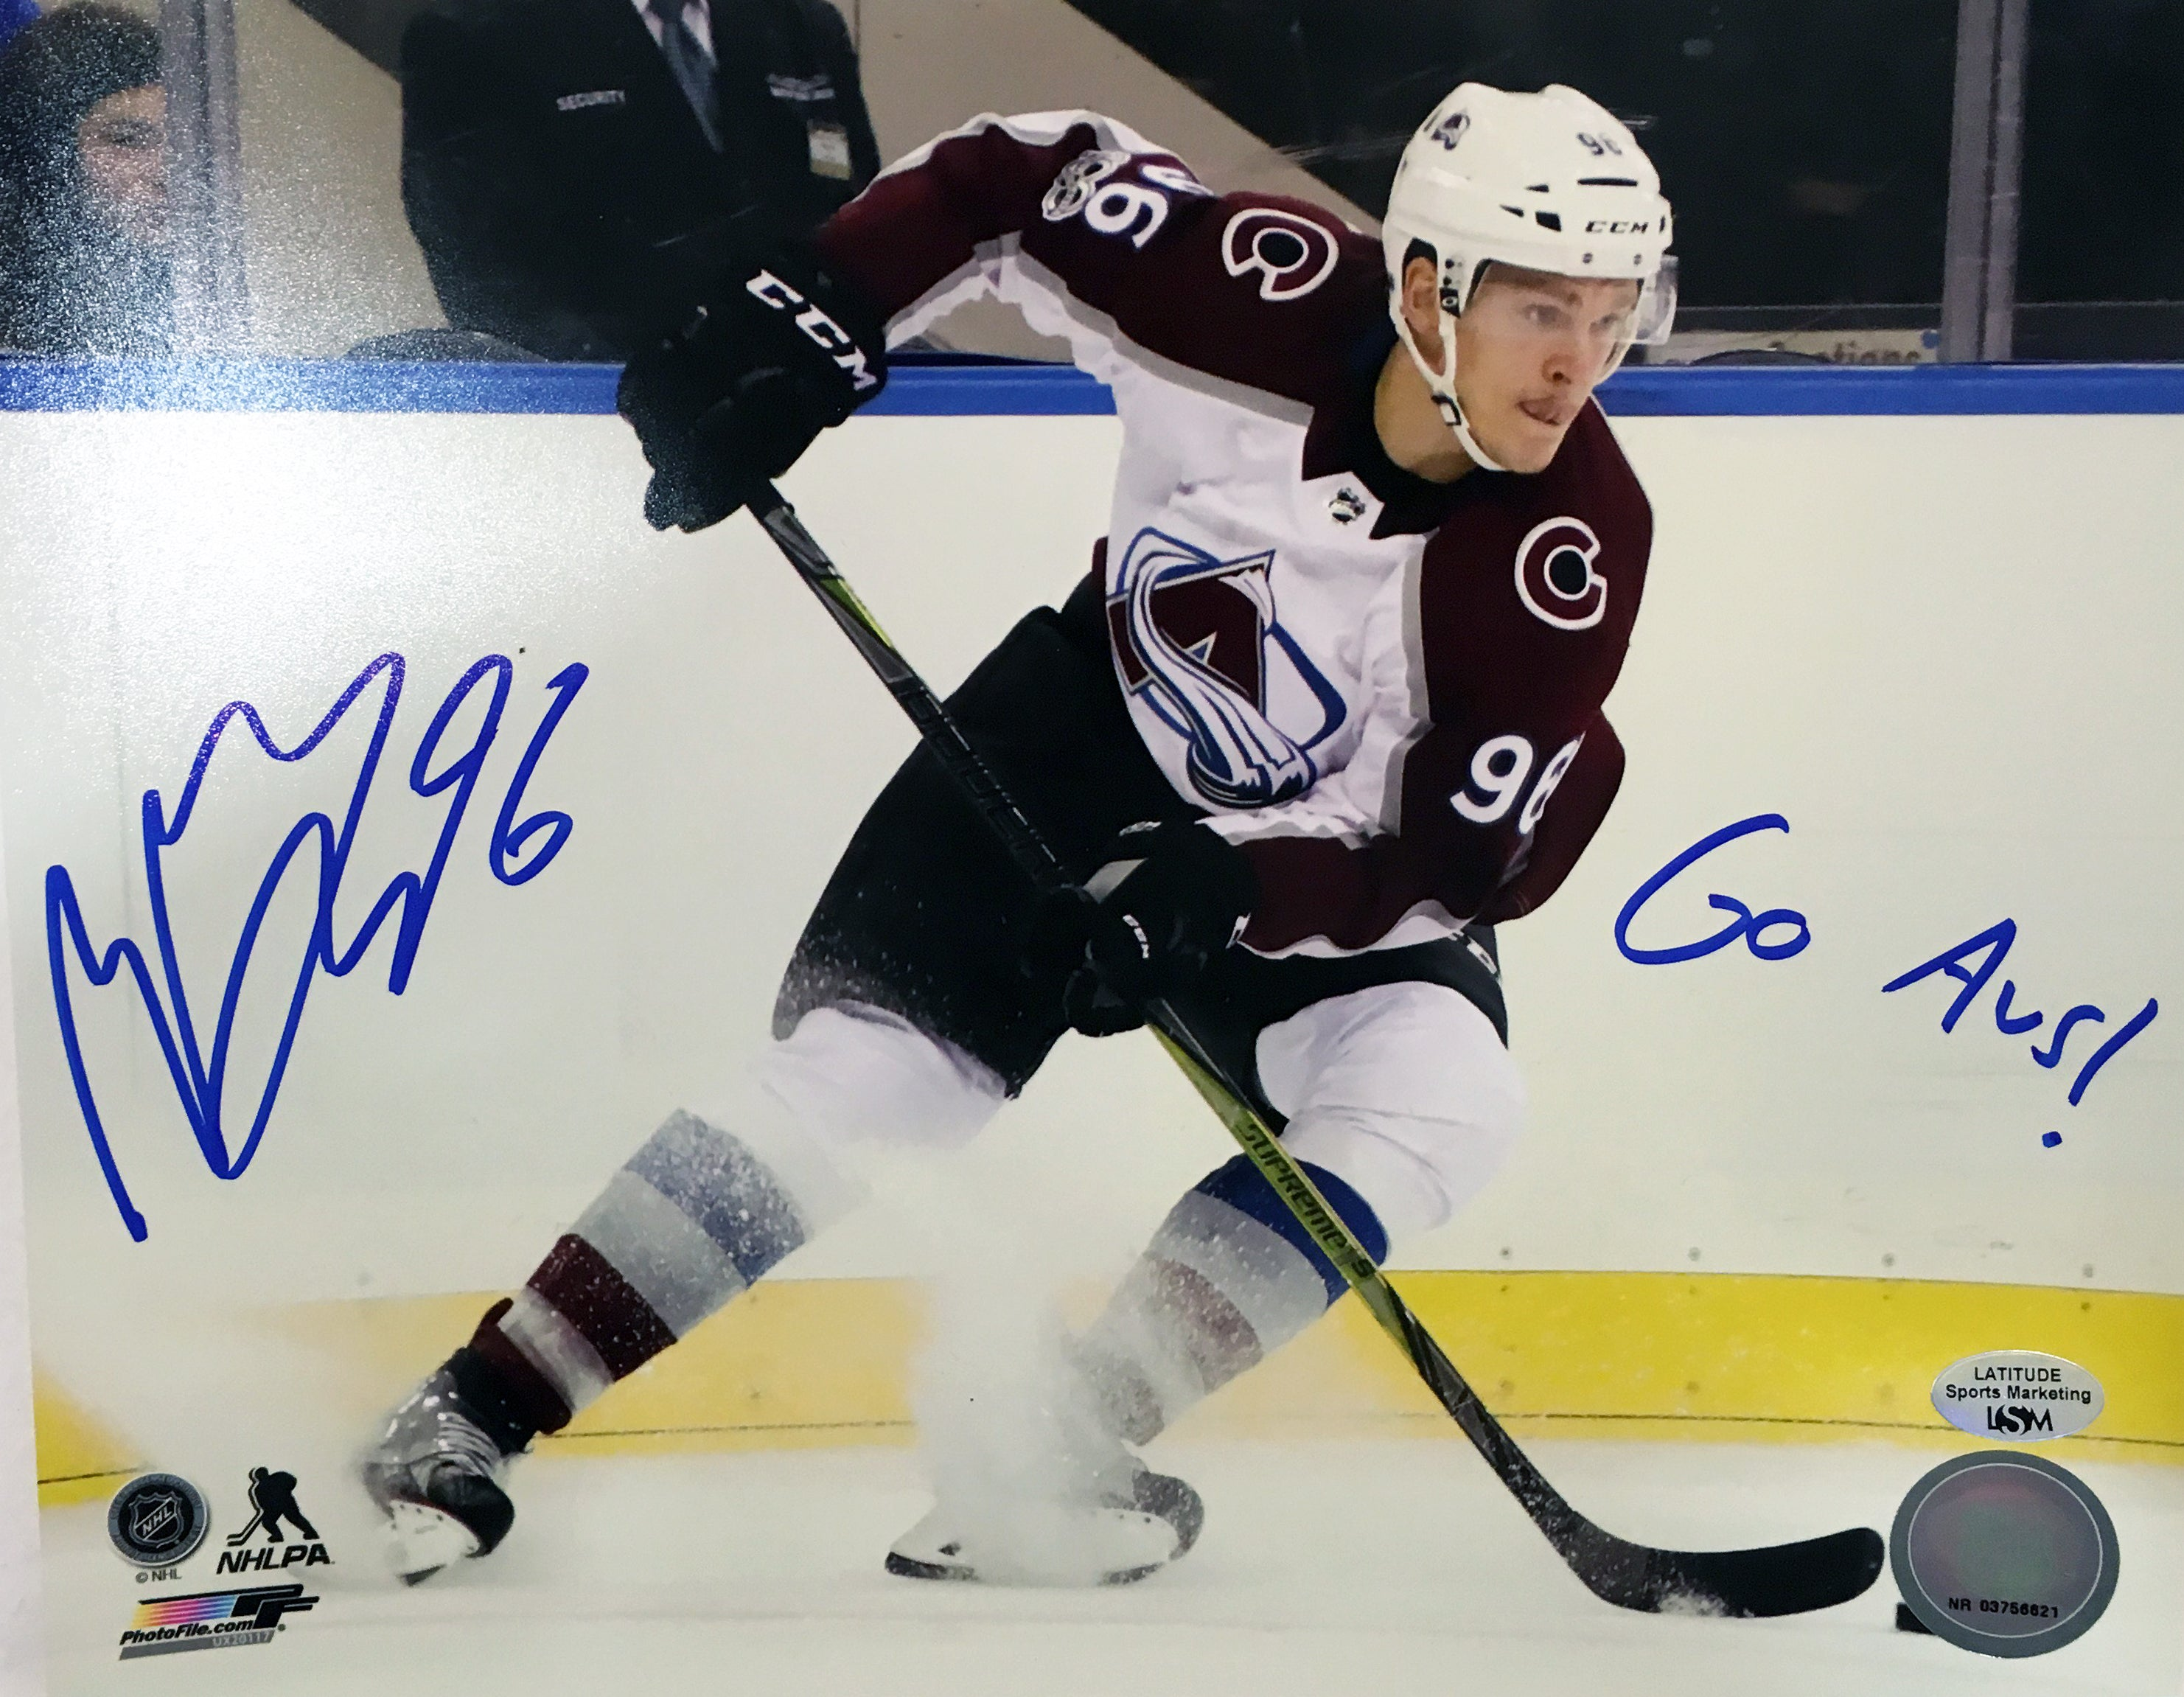 8b013cbff Mikko Rantanen Signed 8x10 Photo with Inscription (White Uniform Skating)